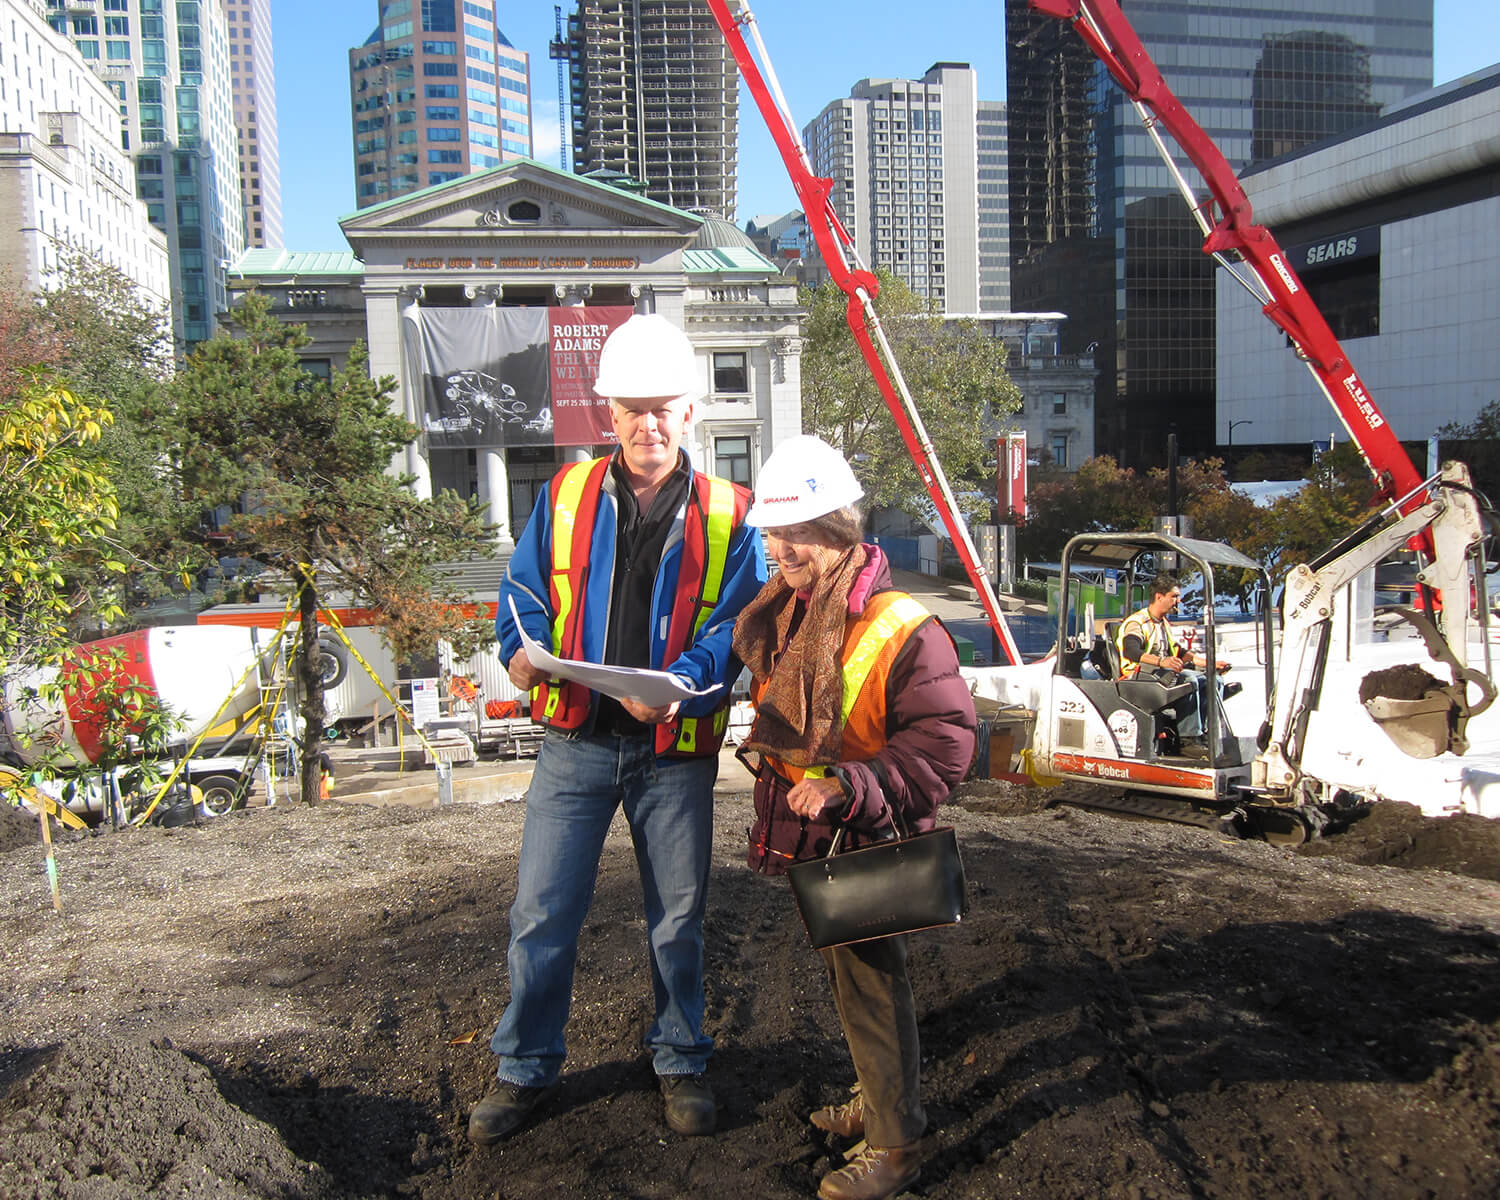 Cornelia Oberlander wearing construction gear at Robson Square in 2011